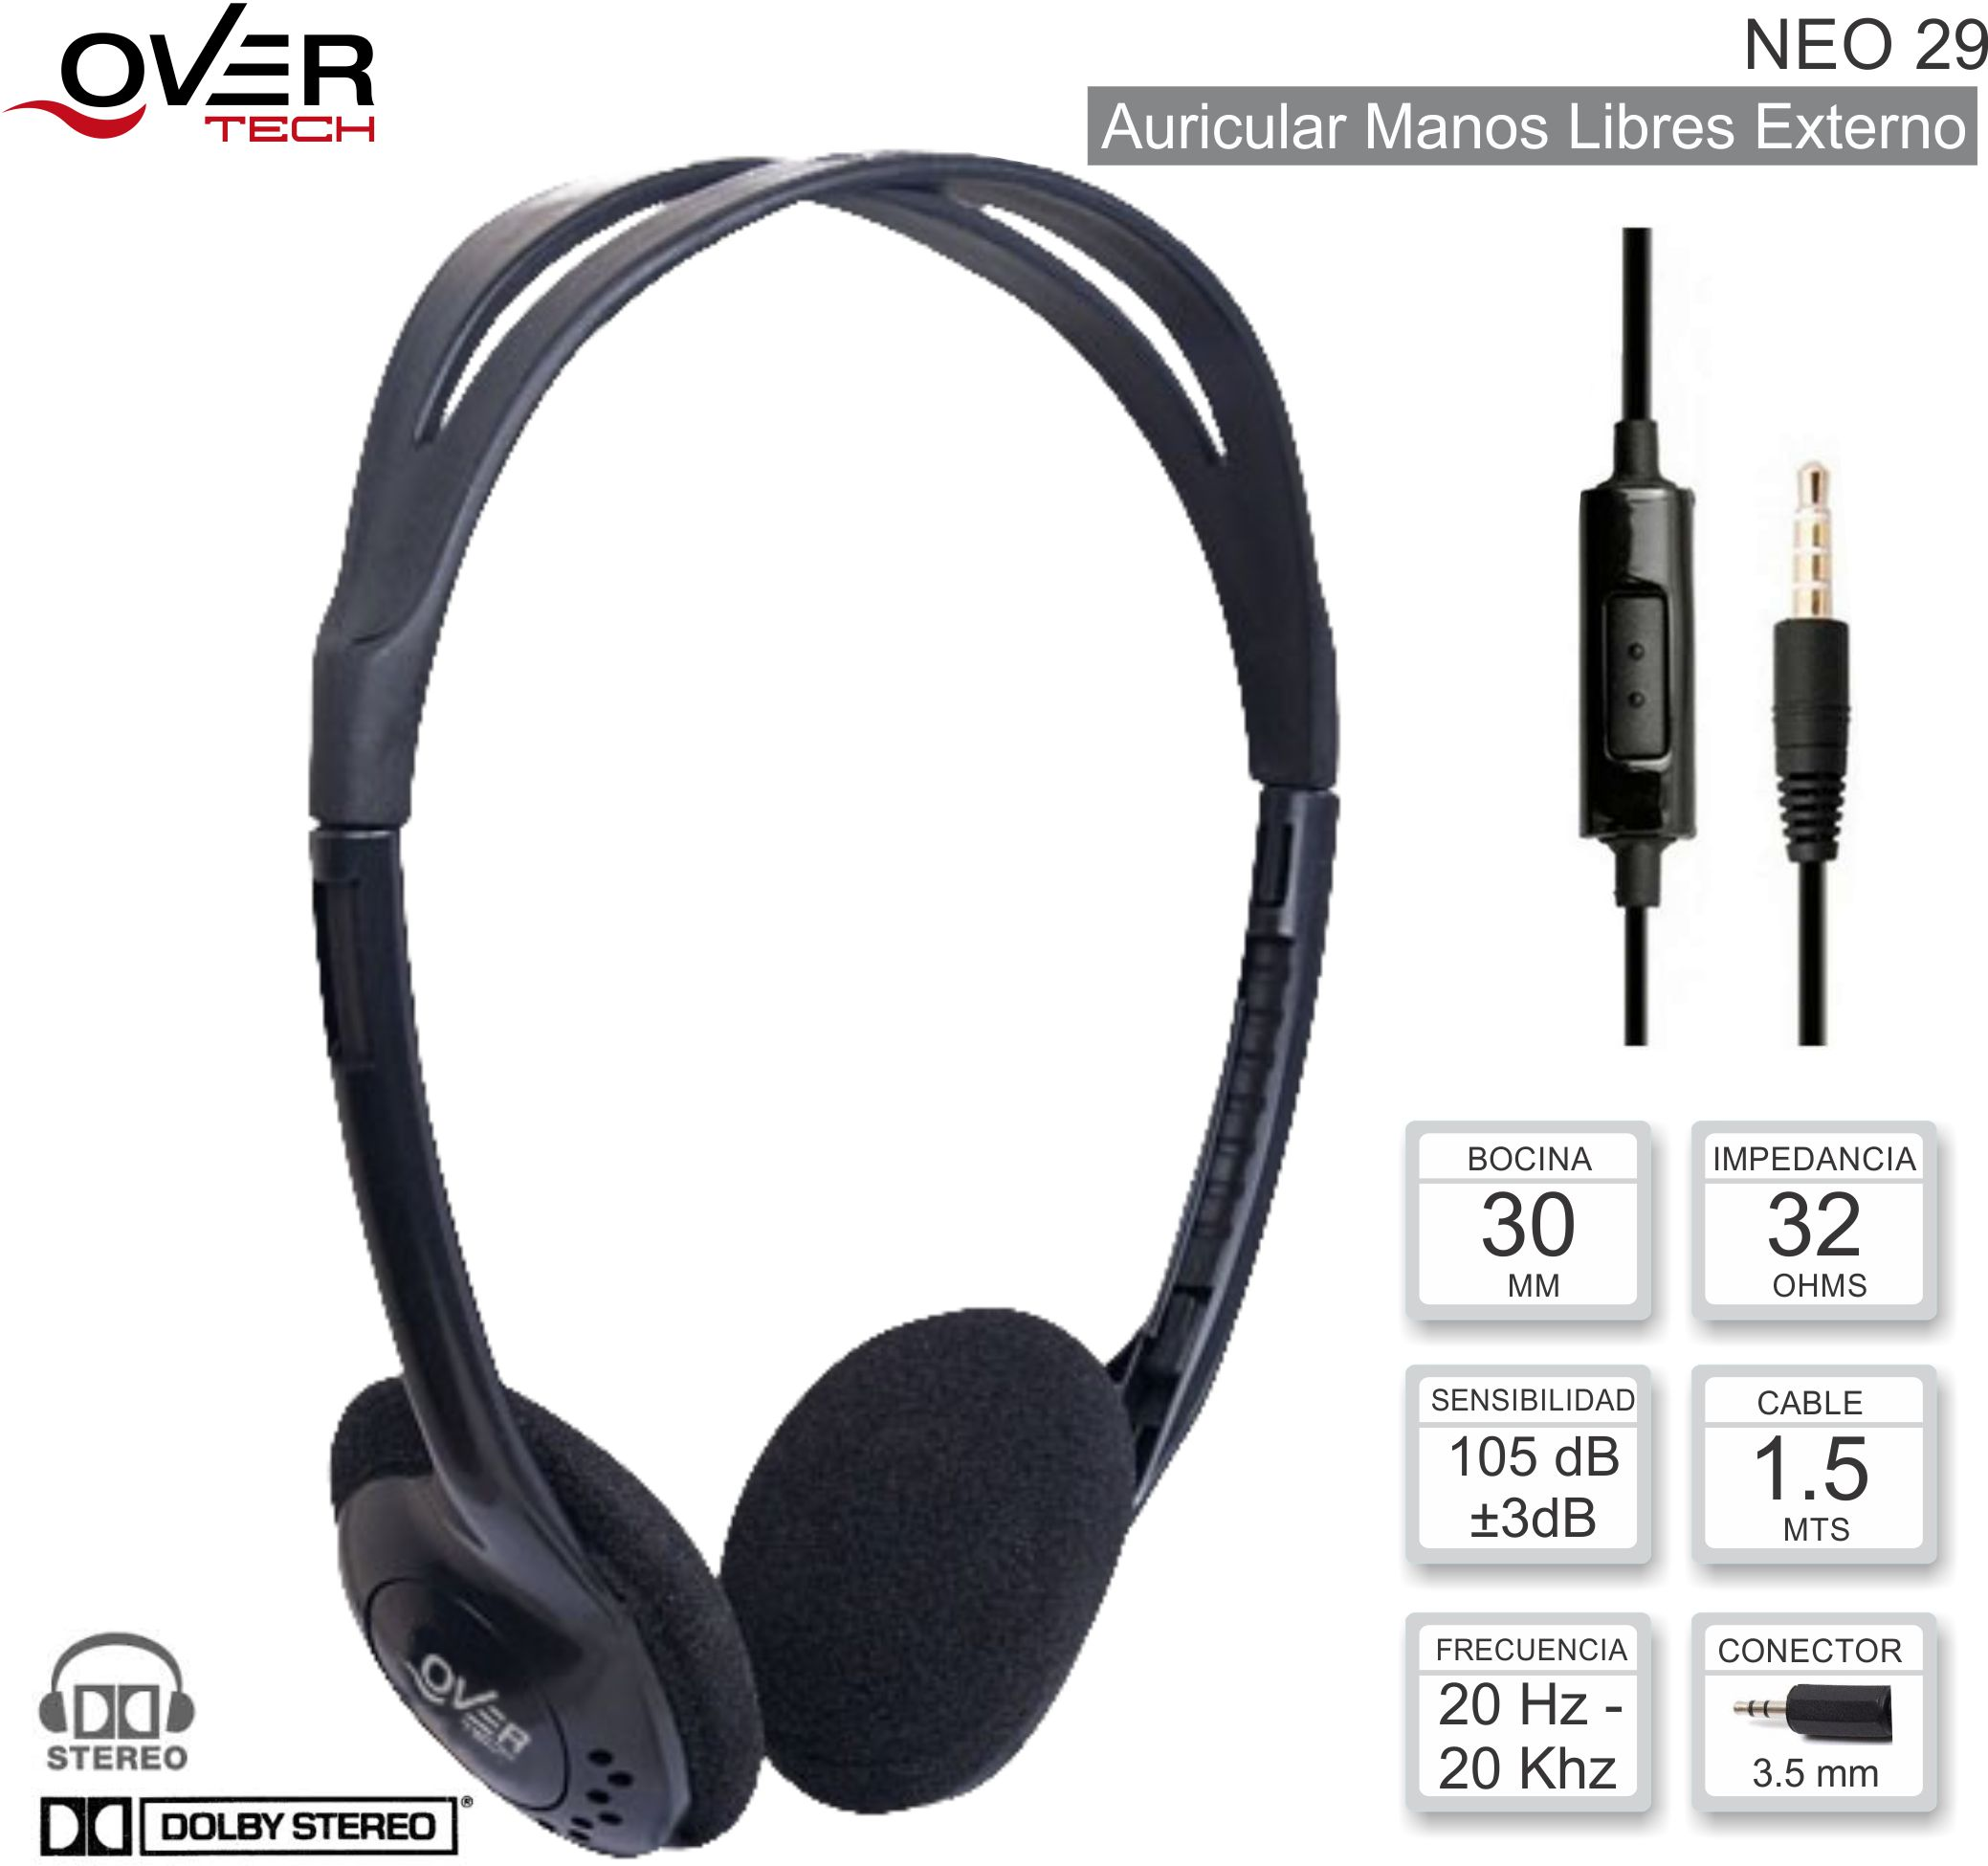 Auricular ML ON OVERTECH Neo 29